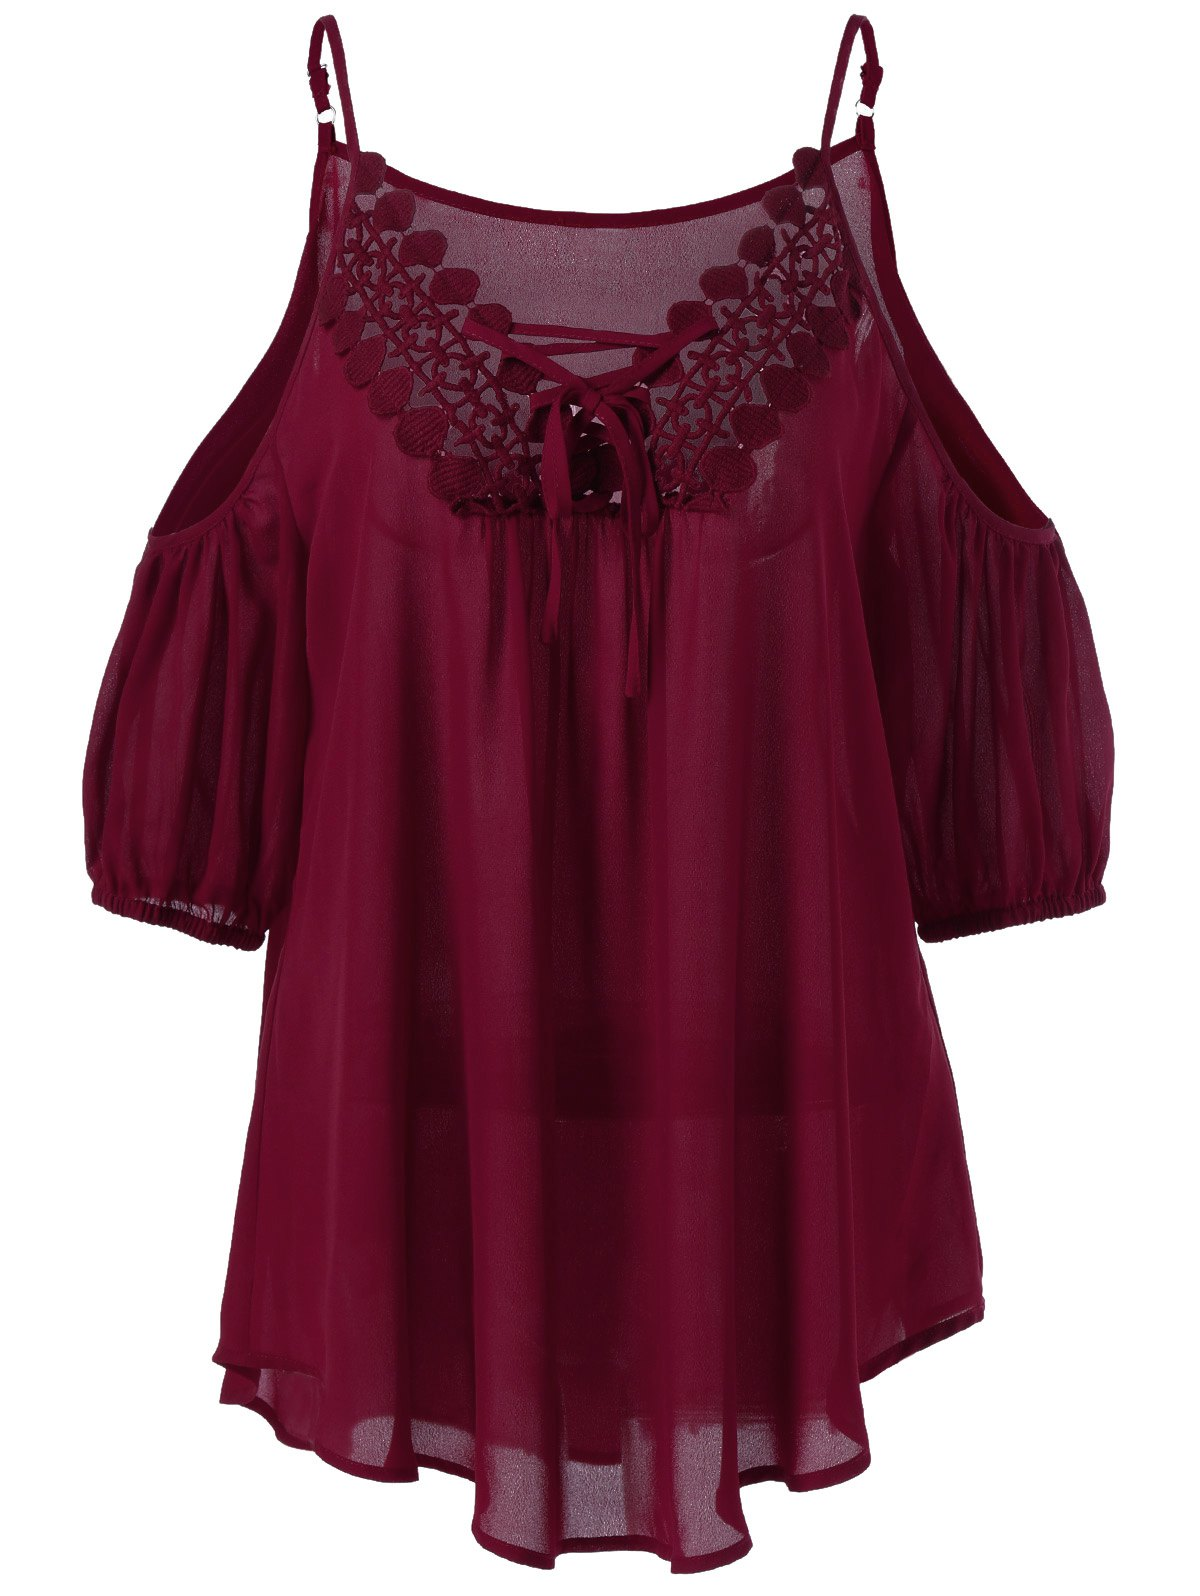 Lace Up Spaghetti Strap Cold Shoulder Crochet Top - WINE RED 4XL